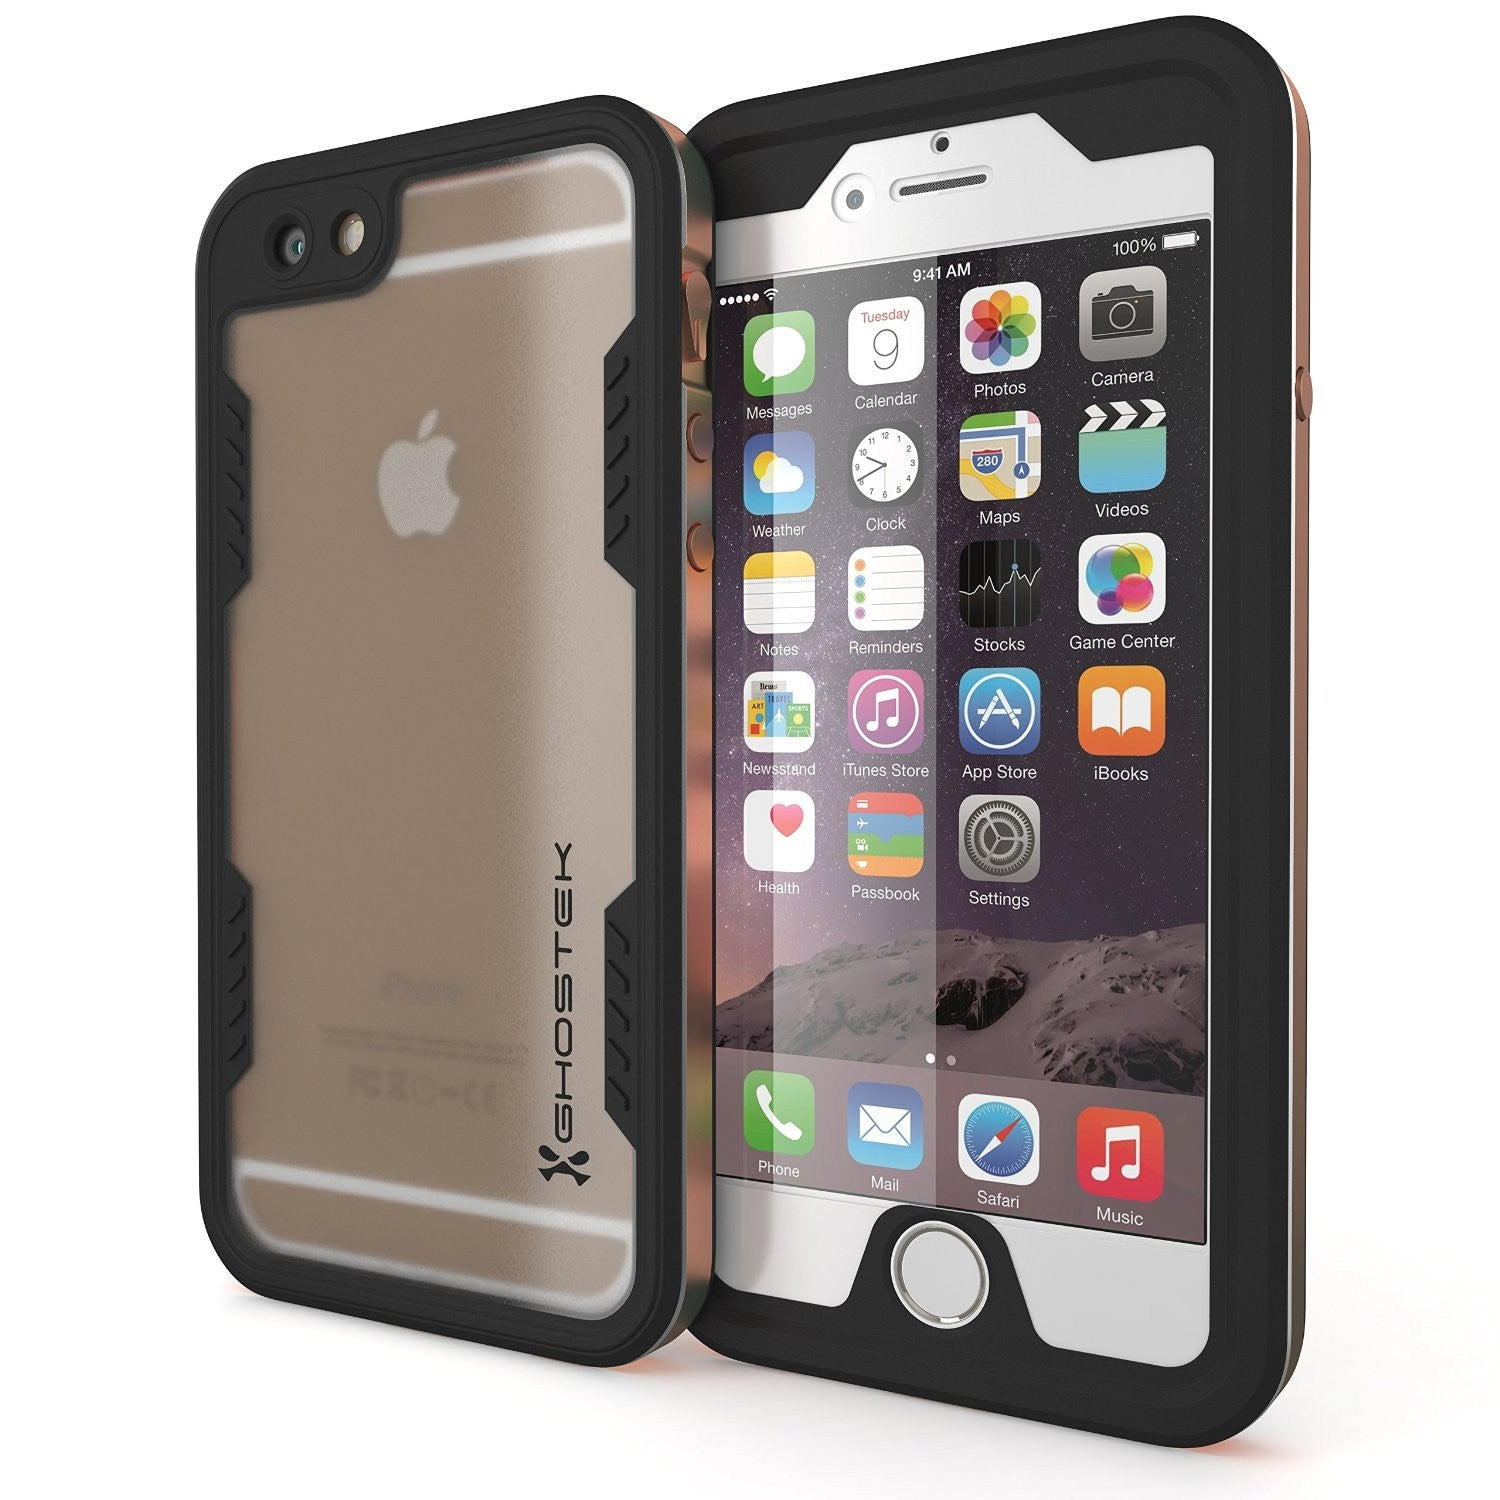 iPhone 6S+/6+ Plus Waterproof Case Ghostek Atomic 2.0 Gold w/ Attached Screen Protector | Slim